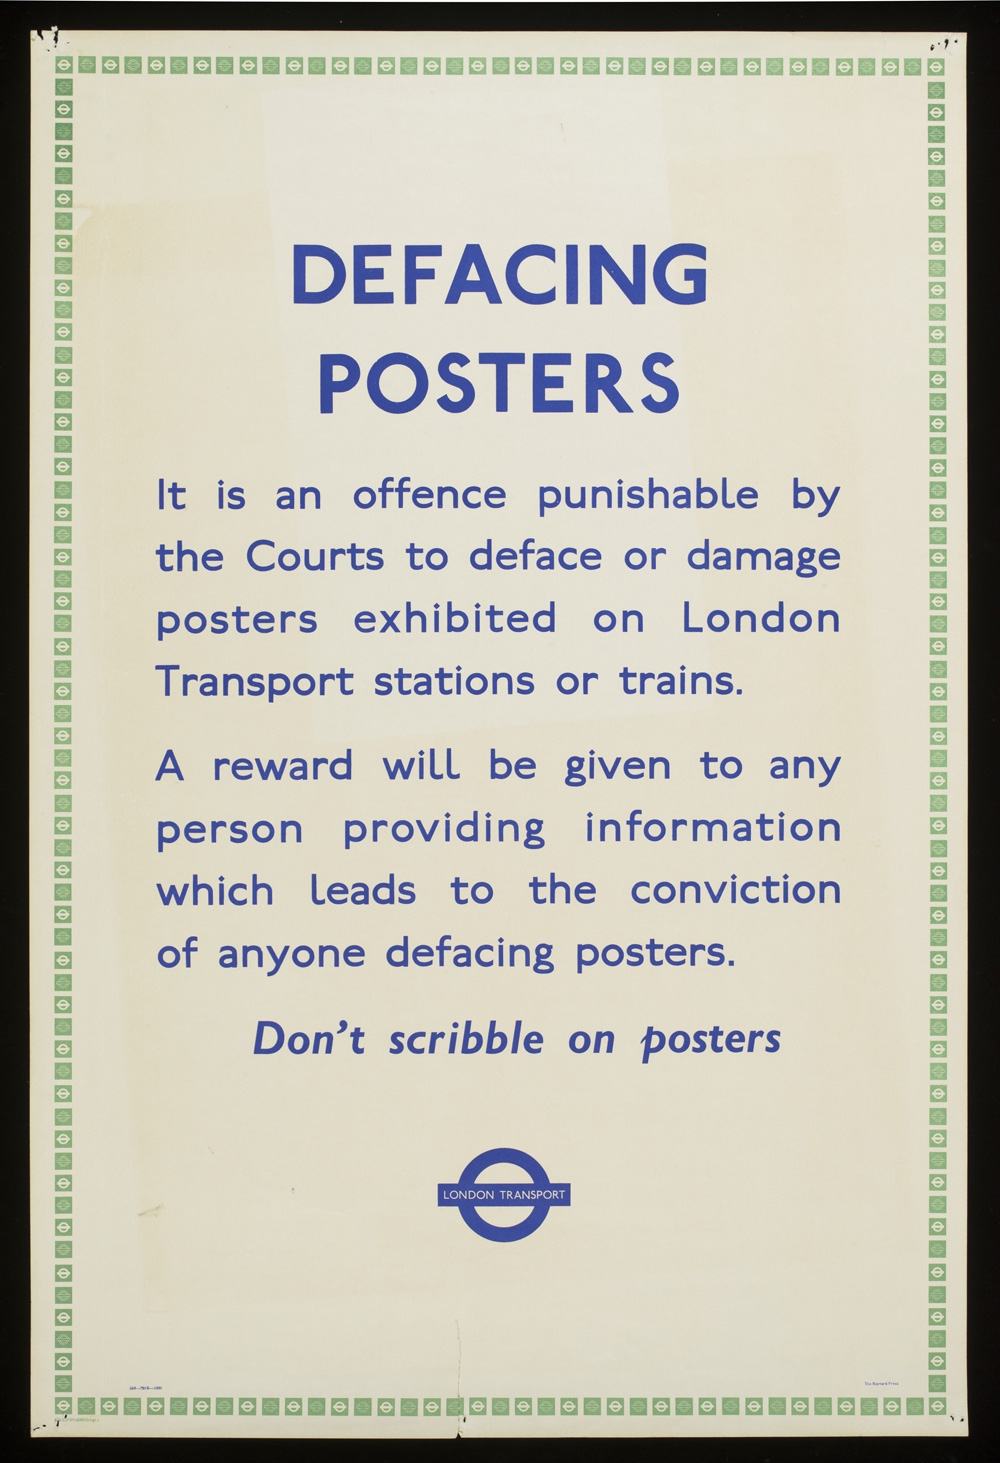 edward-johnston_-defacing-posters_-no-date-_v_amp_a-e-584-1999__-victoria-and-albert-museum_-london_.jpg